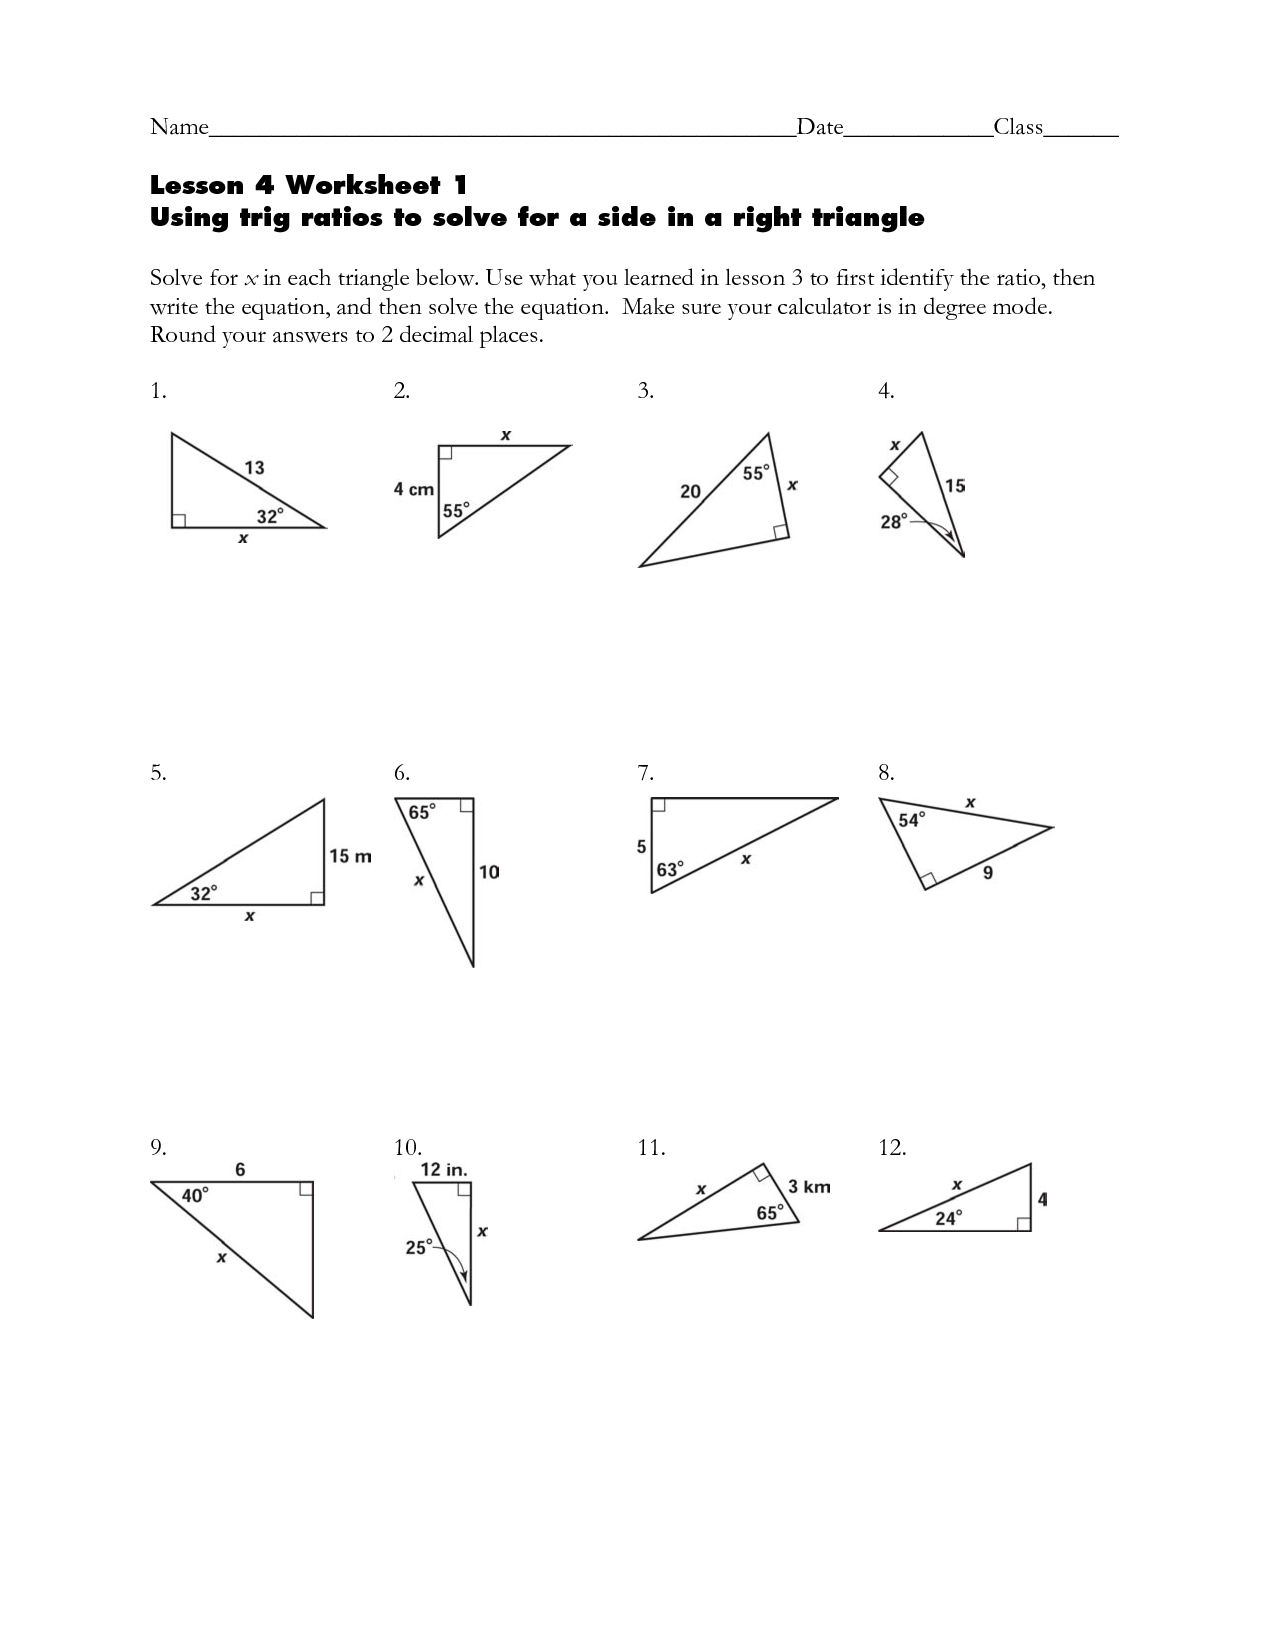 worksheet Free Trigonometry Worksheets trigonometry word y clipart kid lesson 4 worksheet 1 using trig ratios to solve name by murplelake77